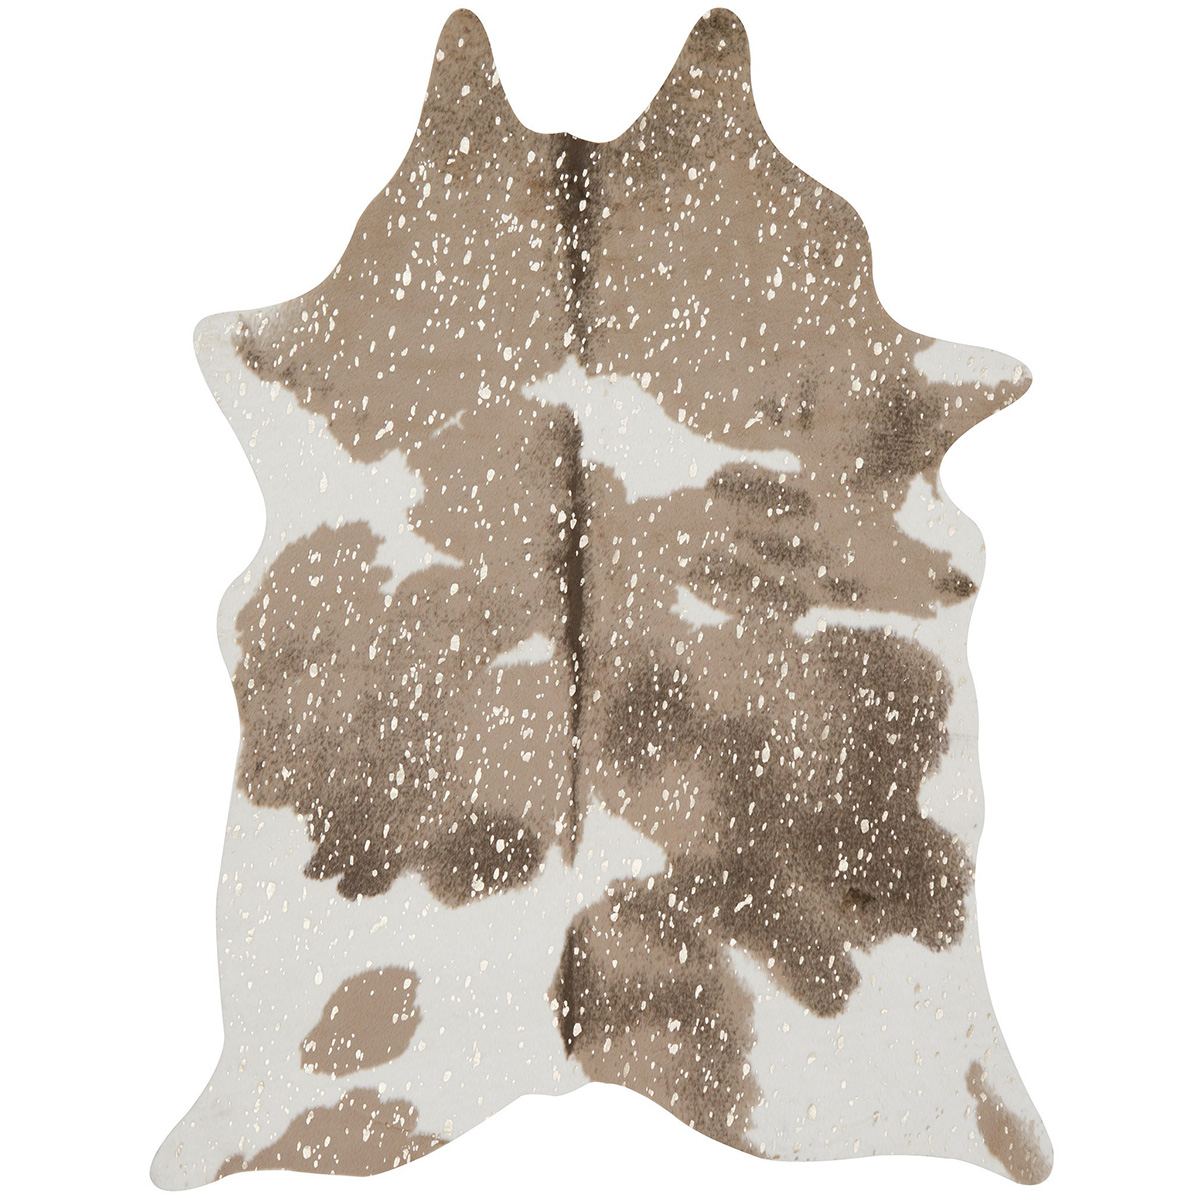 Metallic Taupe and White Faux Cowhide Rug - 4 x 5